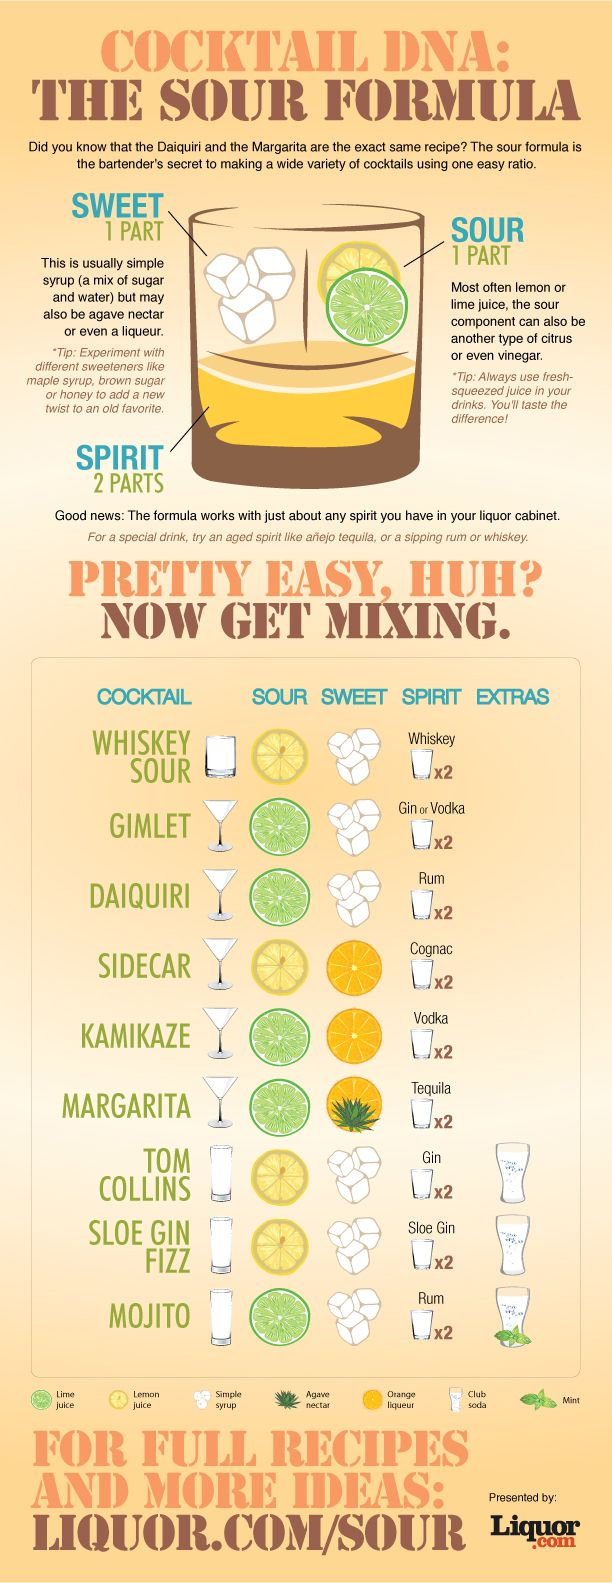 Complete Guide to Creating Sour Cocktails